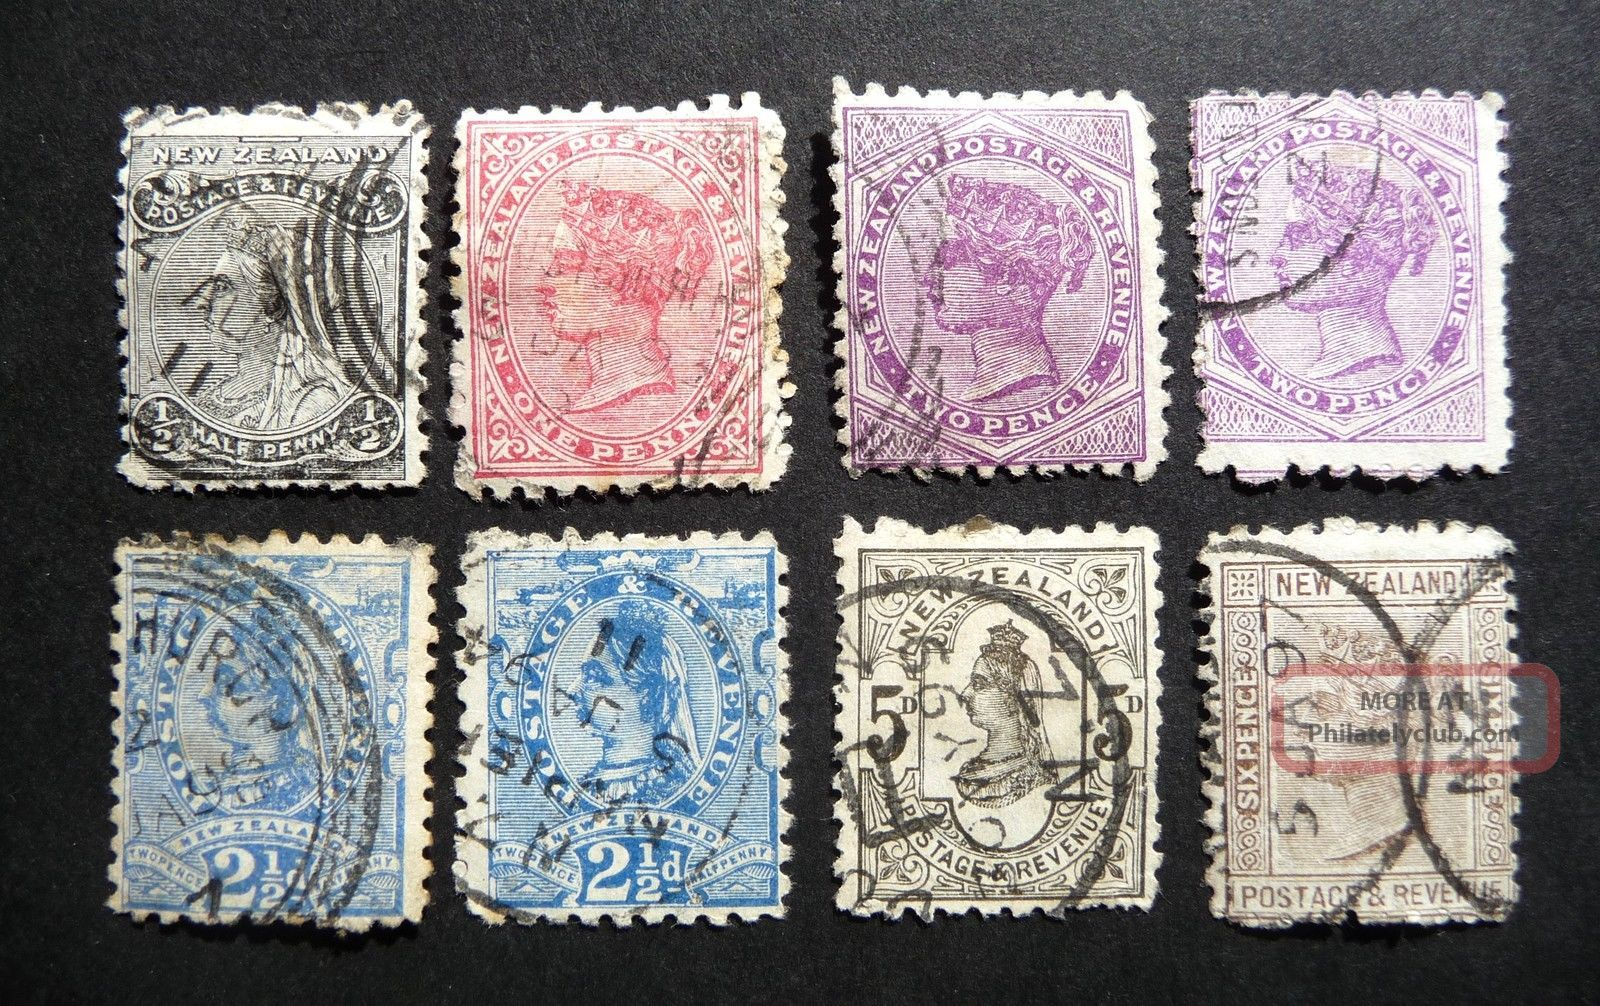 N Z Qvic 1891 - 97 Definitives Perf 10 Or 10 X 11 Compound As Seen Australia & Oceania photo